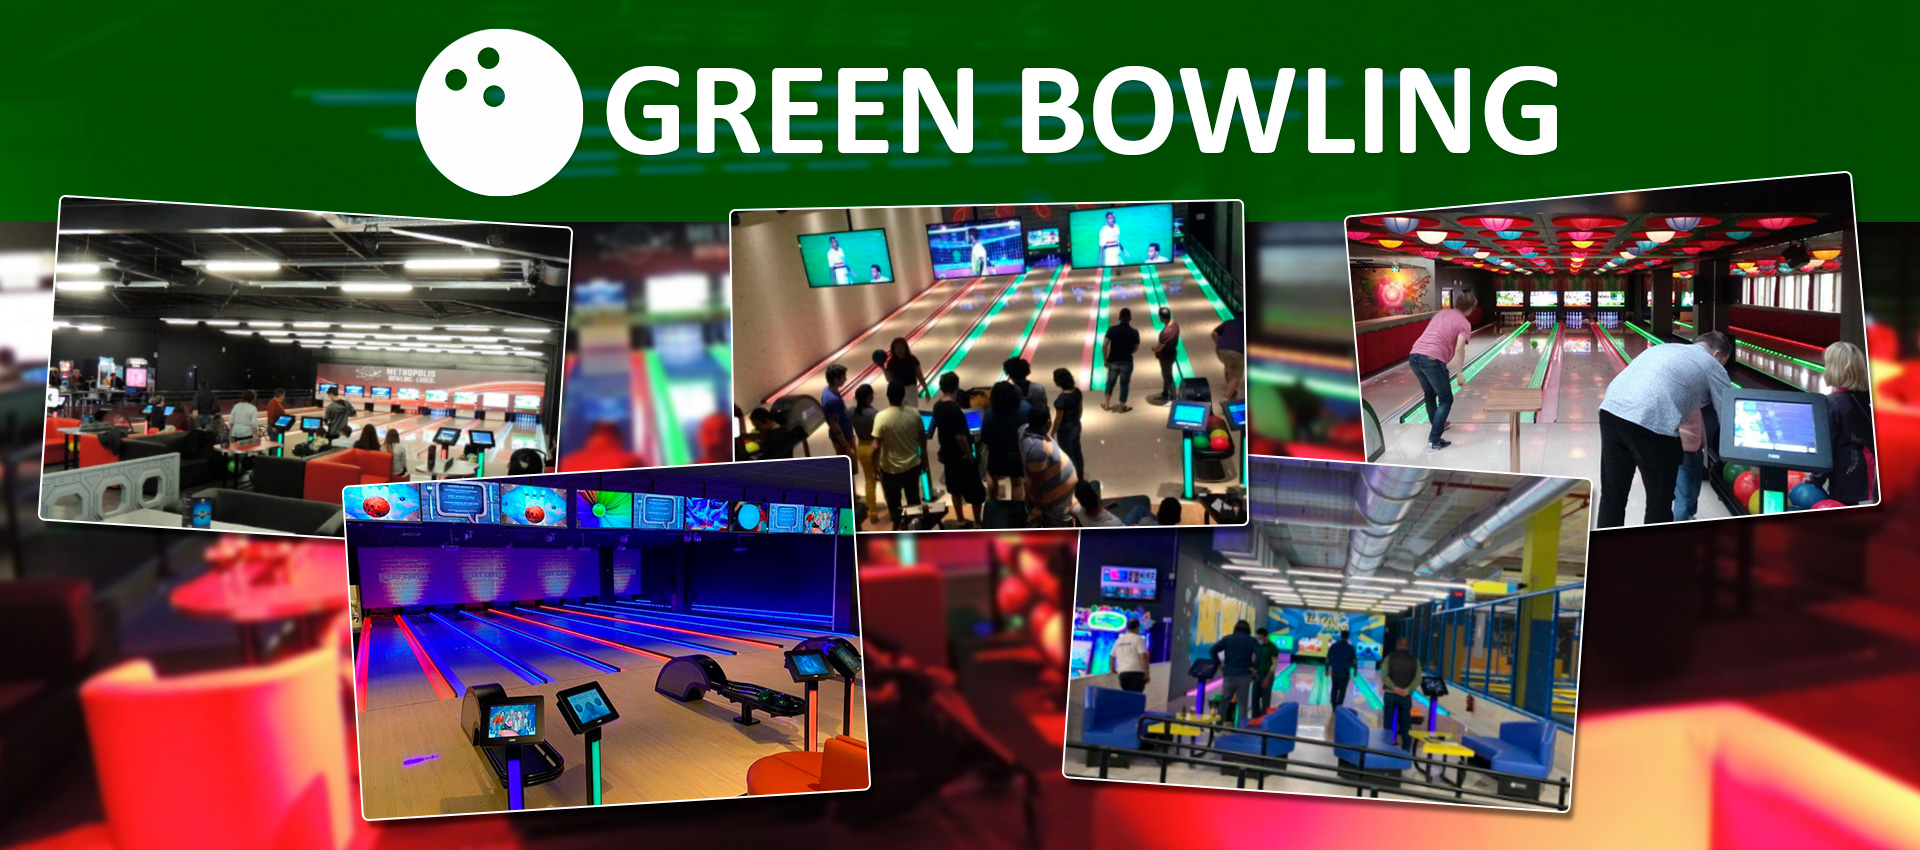 Vya Group Green Bowling